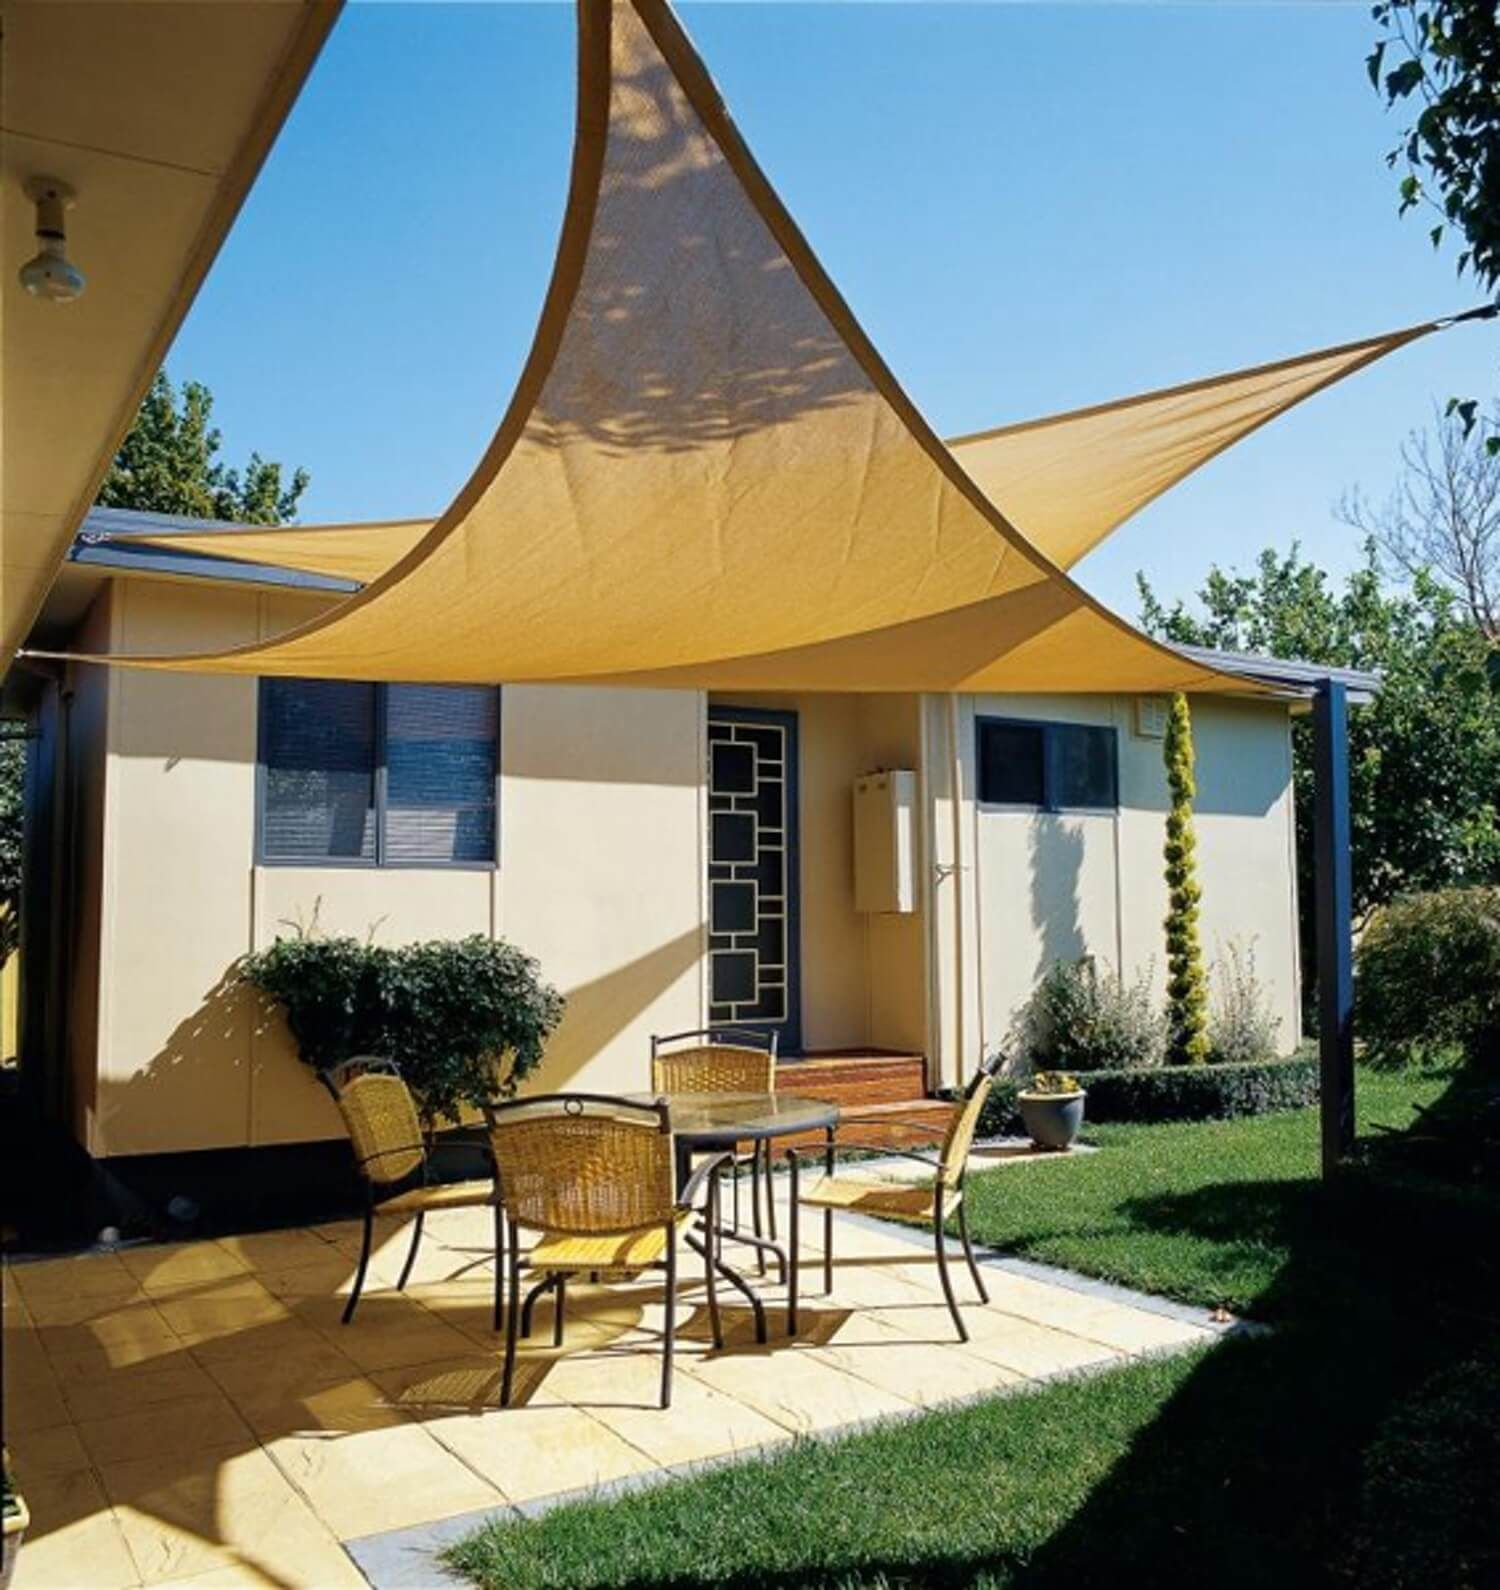 22 Easy Diy Sun Shade Ideas For Your Backyard Or Patio Cortile